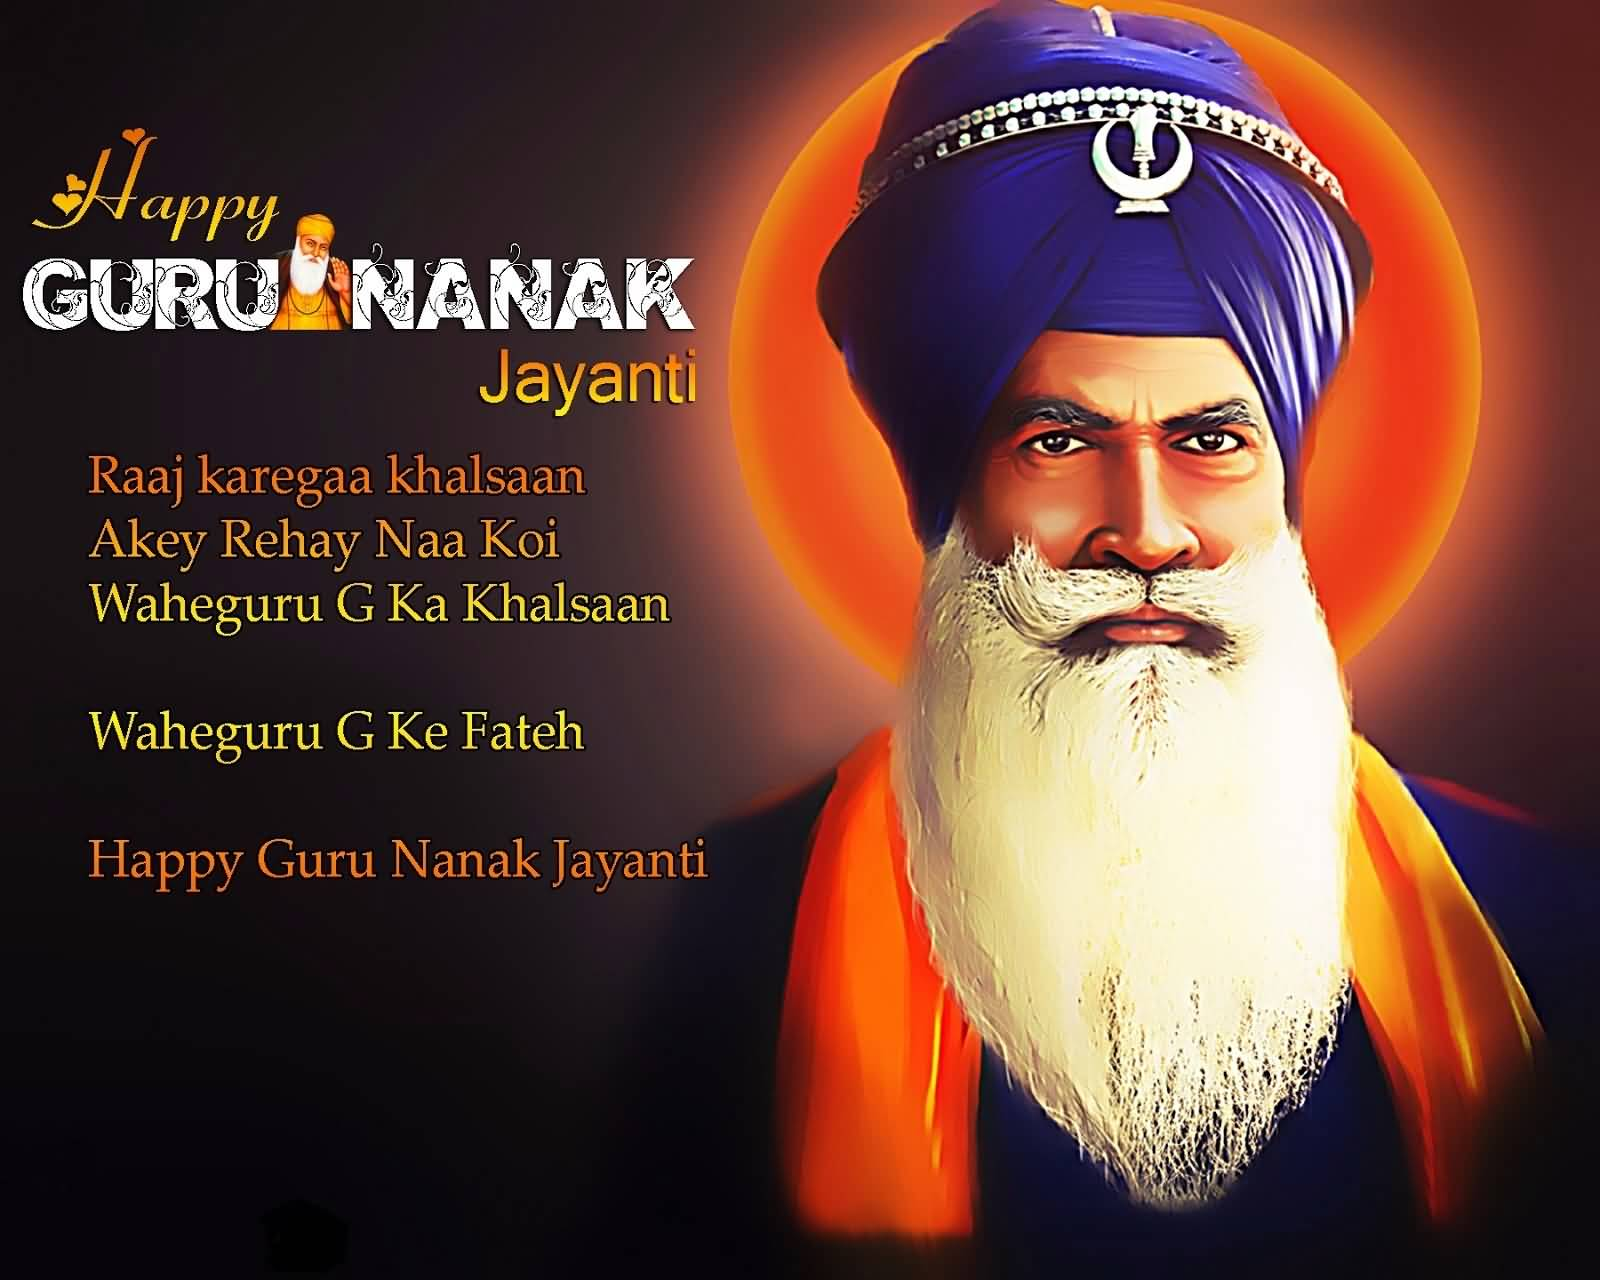 Happy Guru Nanak Jayanti Wishes Picture